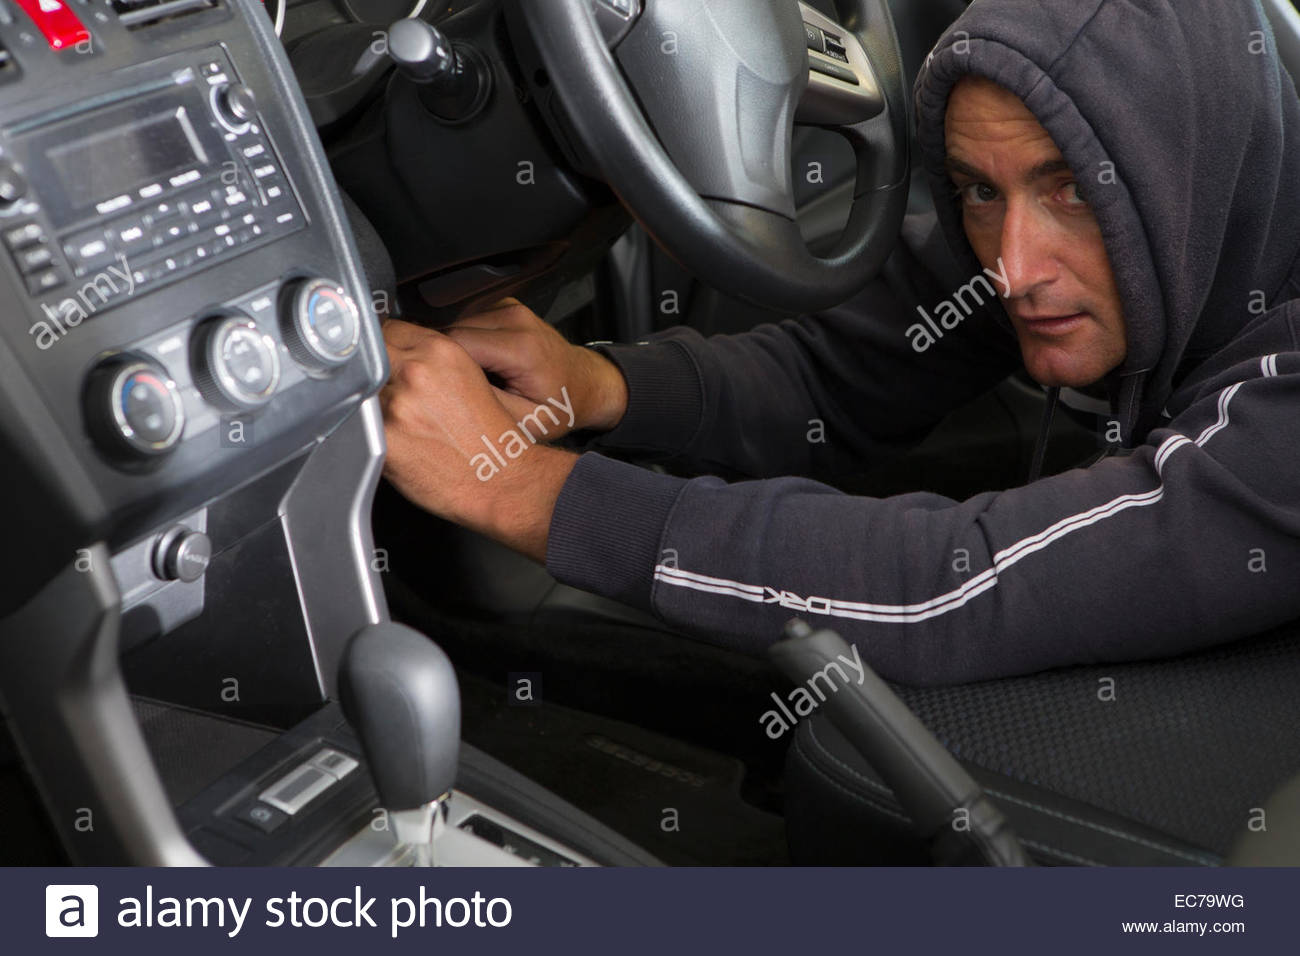 Steal Wire Stock Photos Images Alamy Hot Wiring A Car Thief Hotwiring To Image